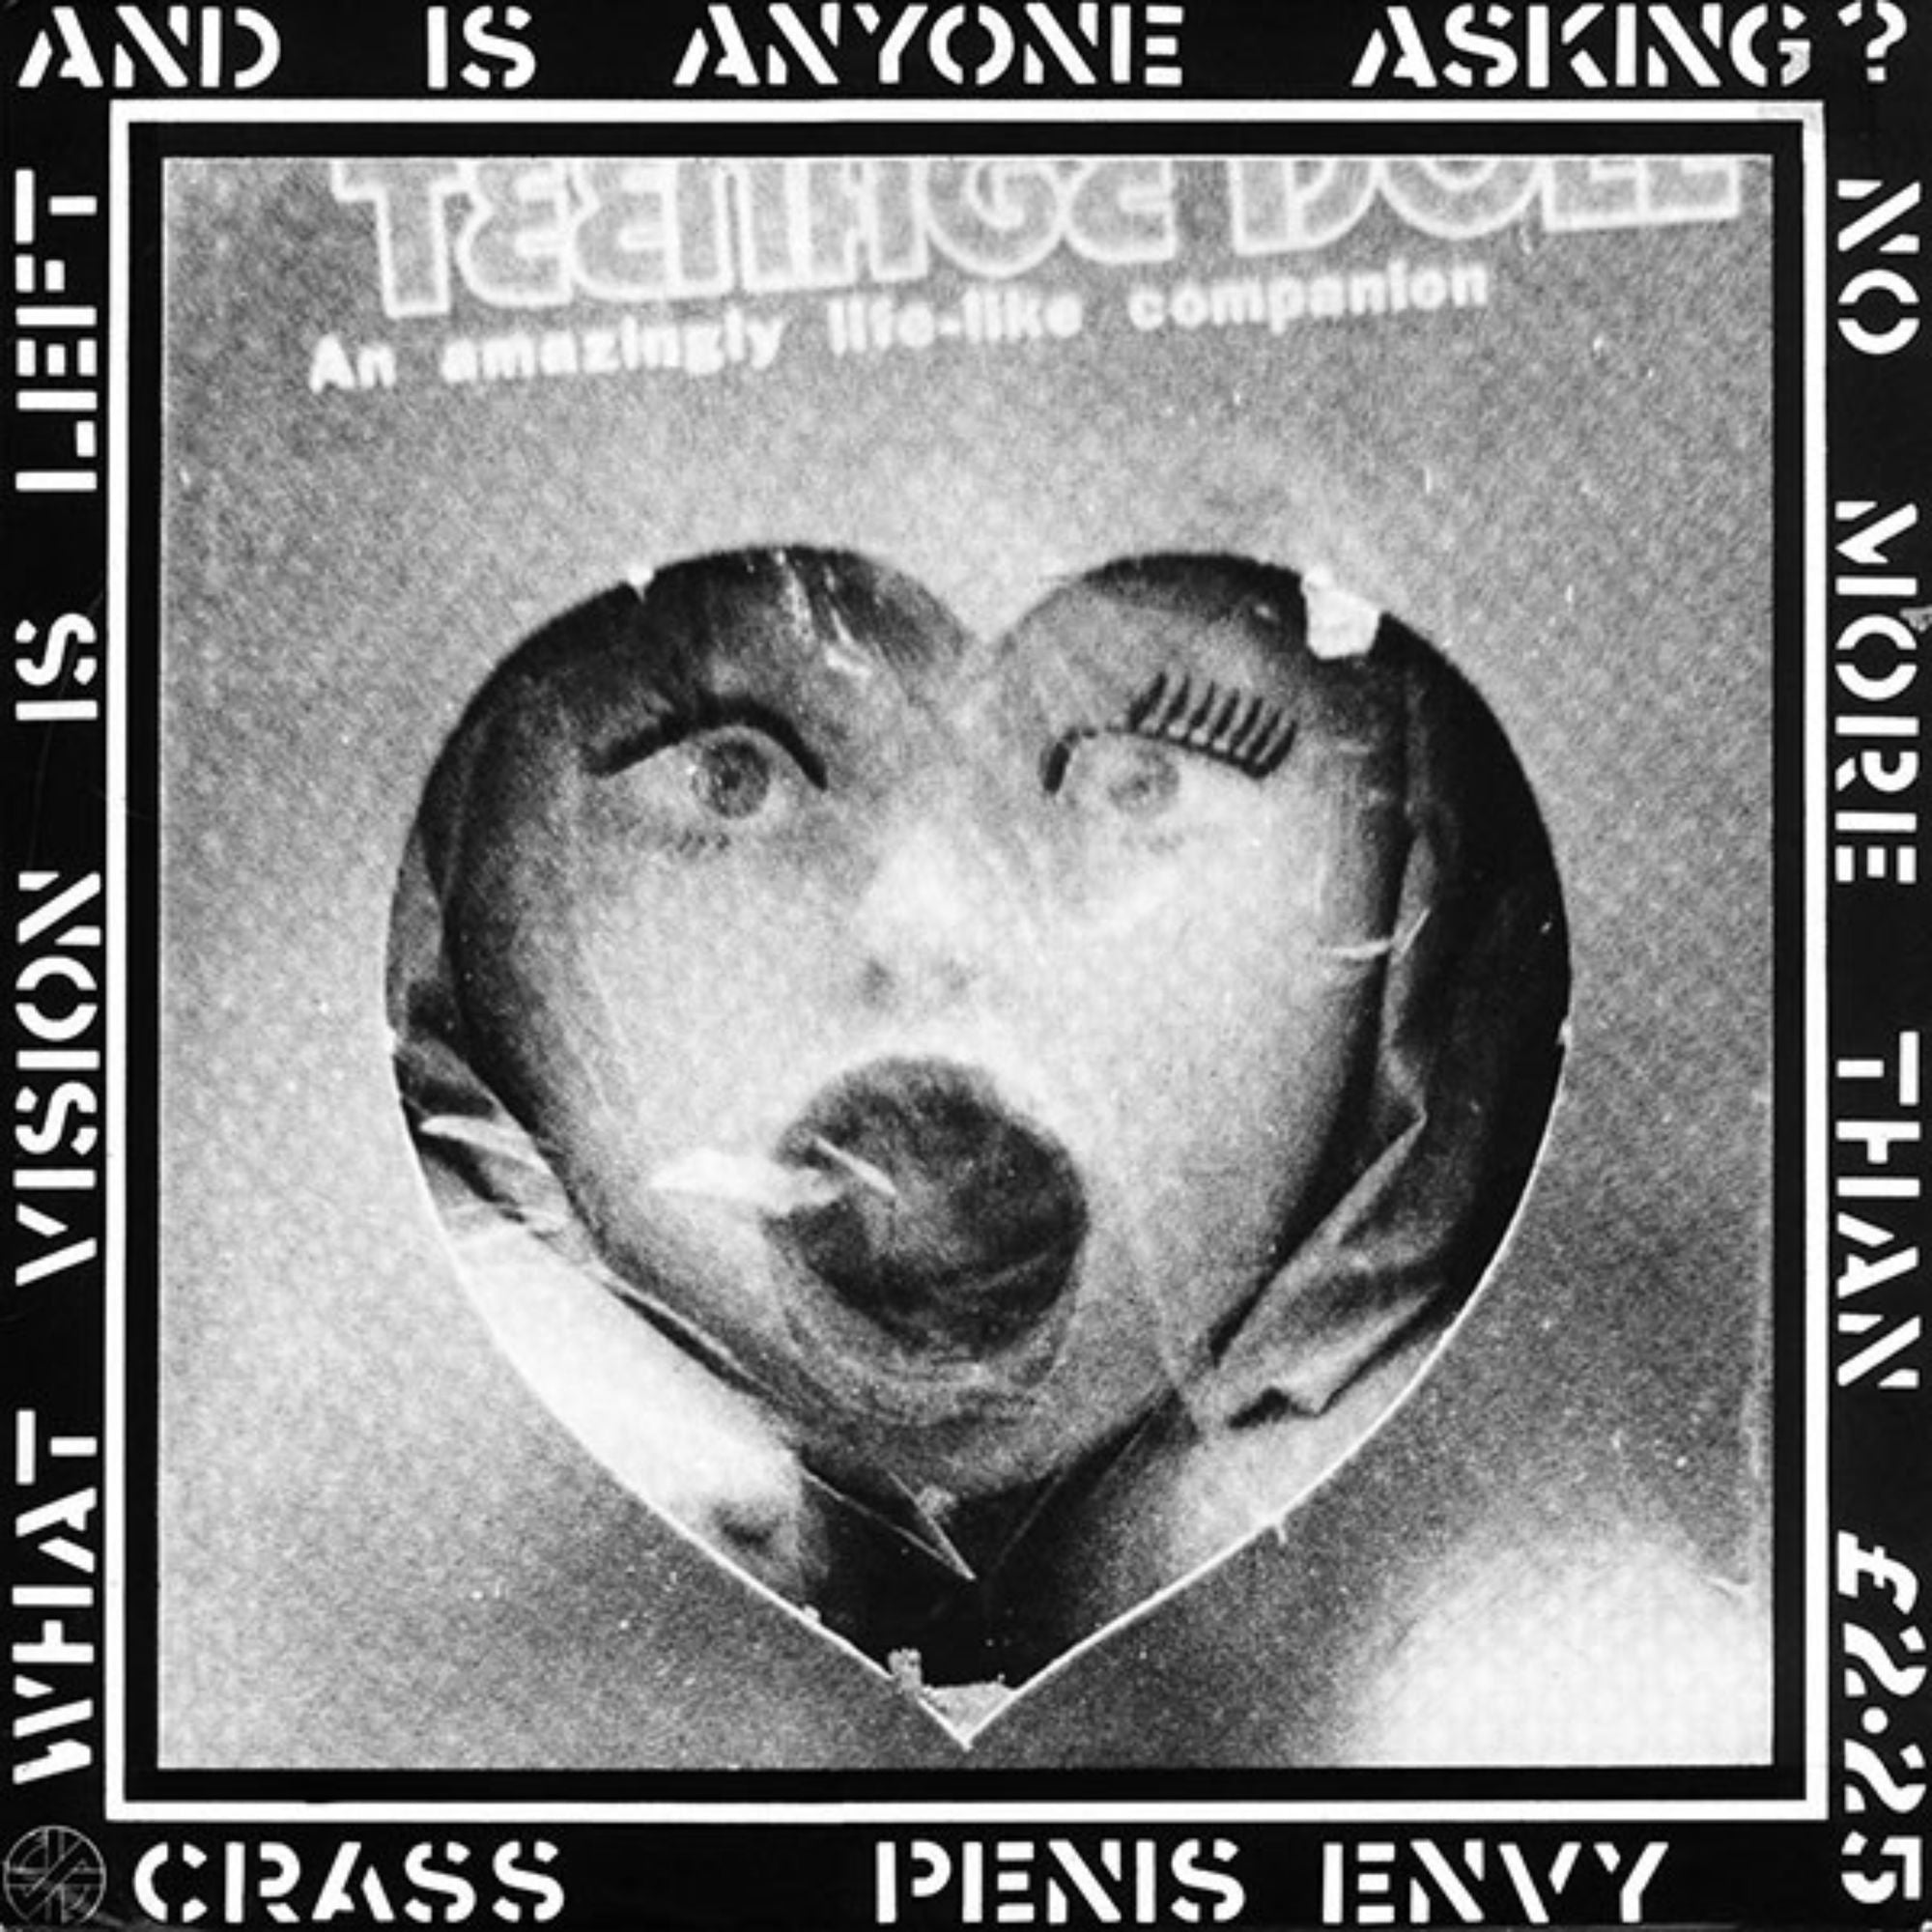 Crass ‎– Penis Envy (1981) - New Vinyl LP Record 2019 Reissue - Punk